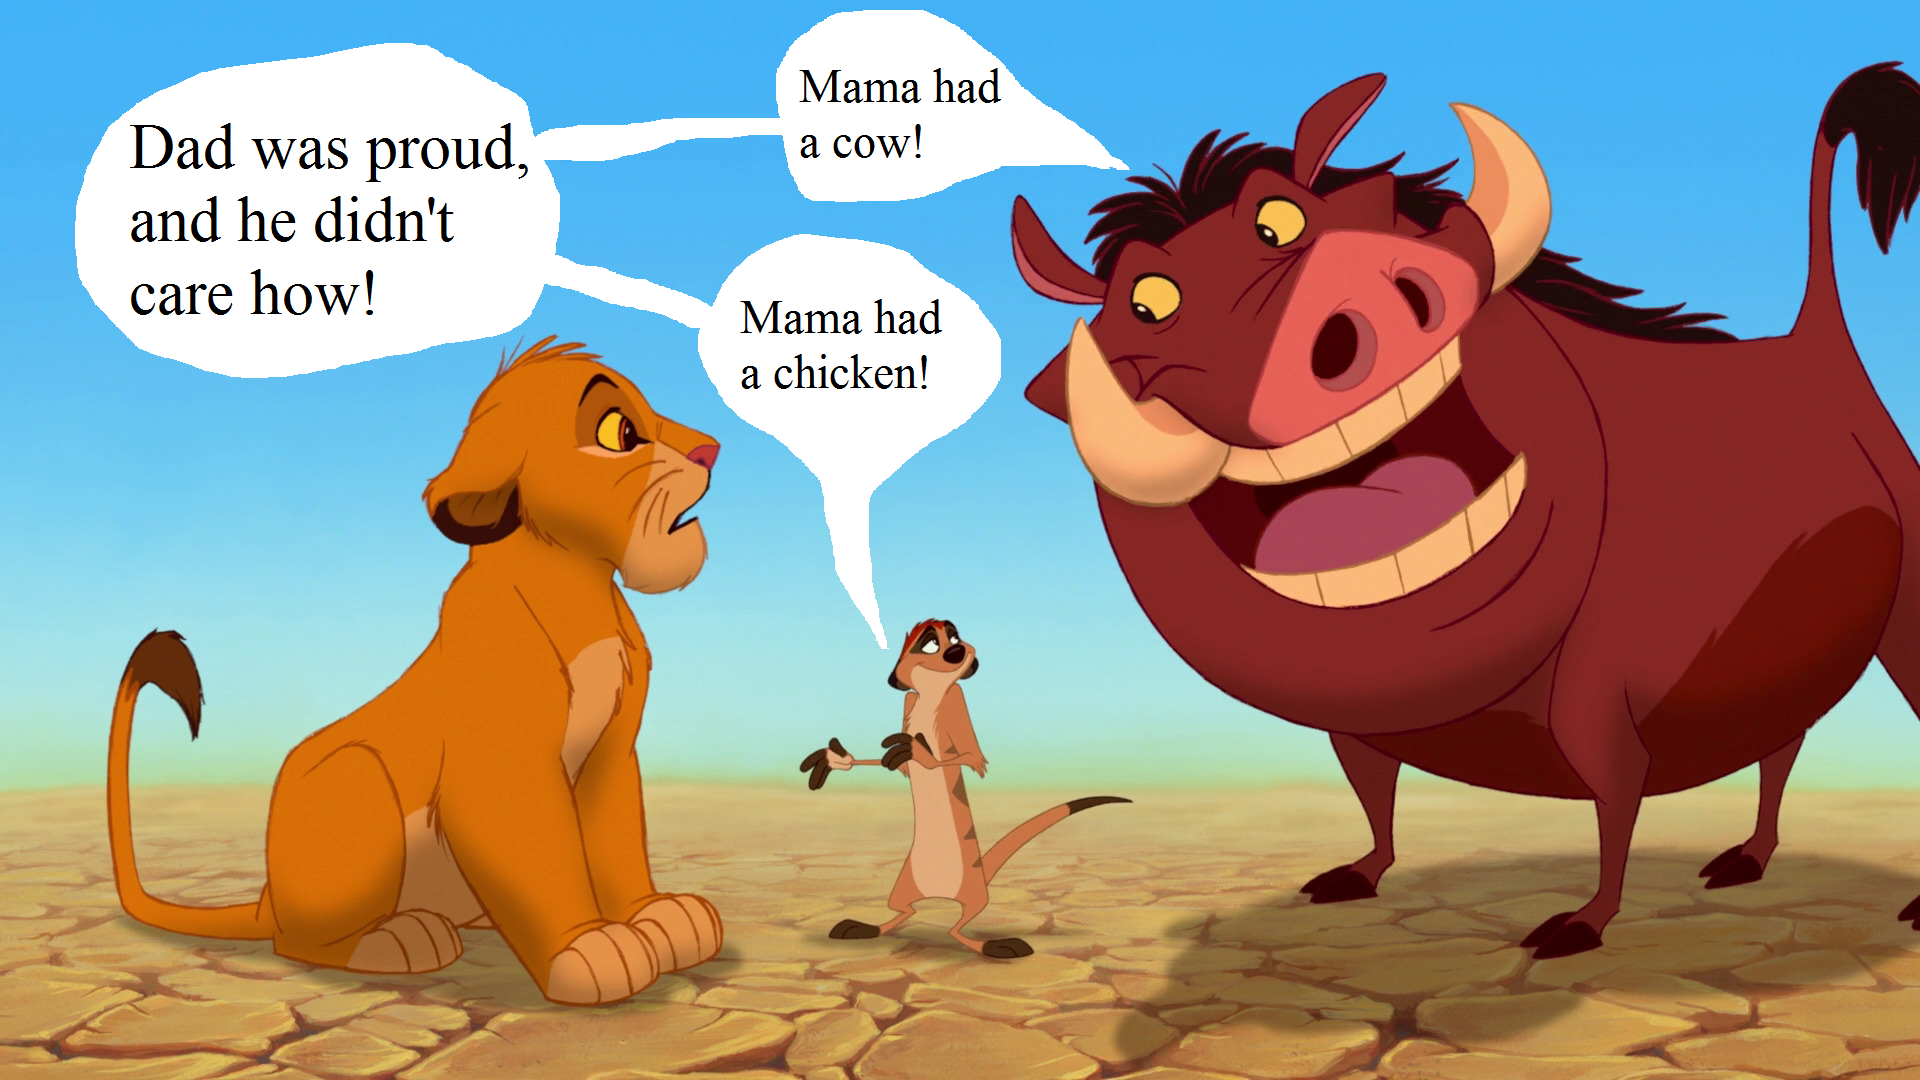 Lion King Funny picture Timon and Pumbaa as Cow and Chicken